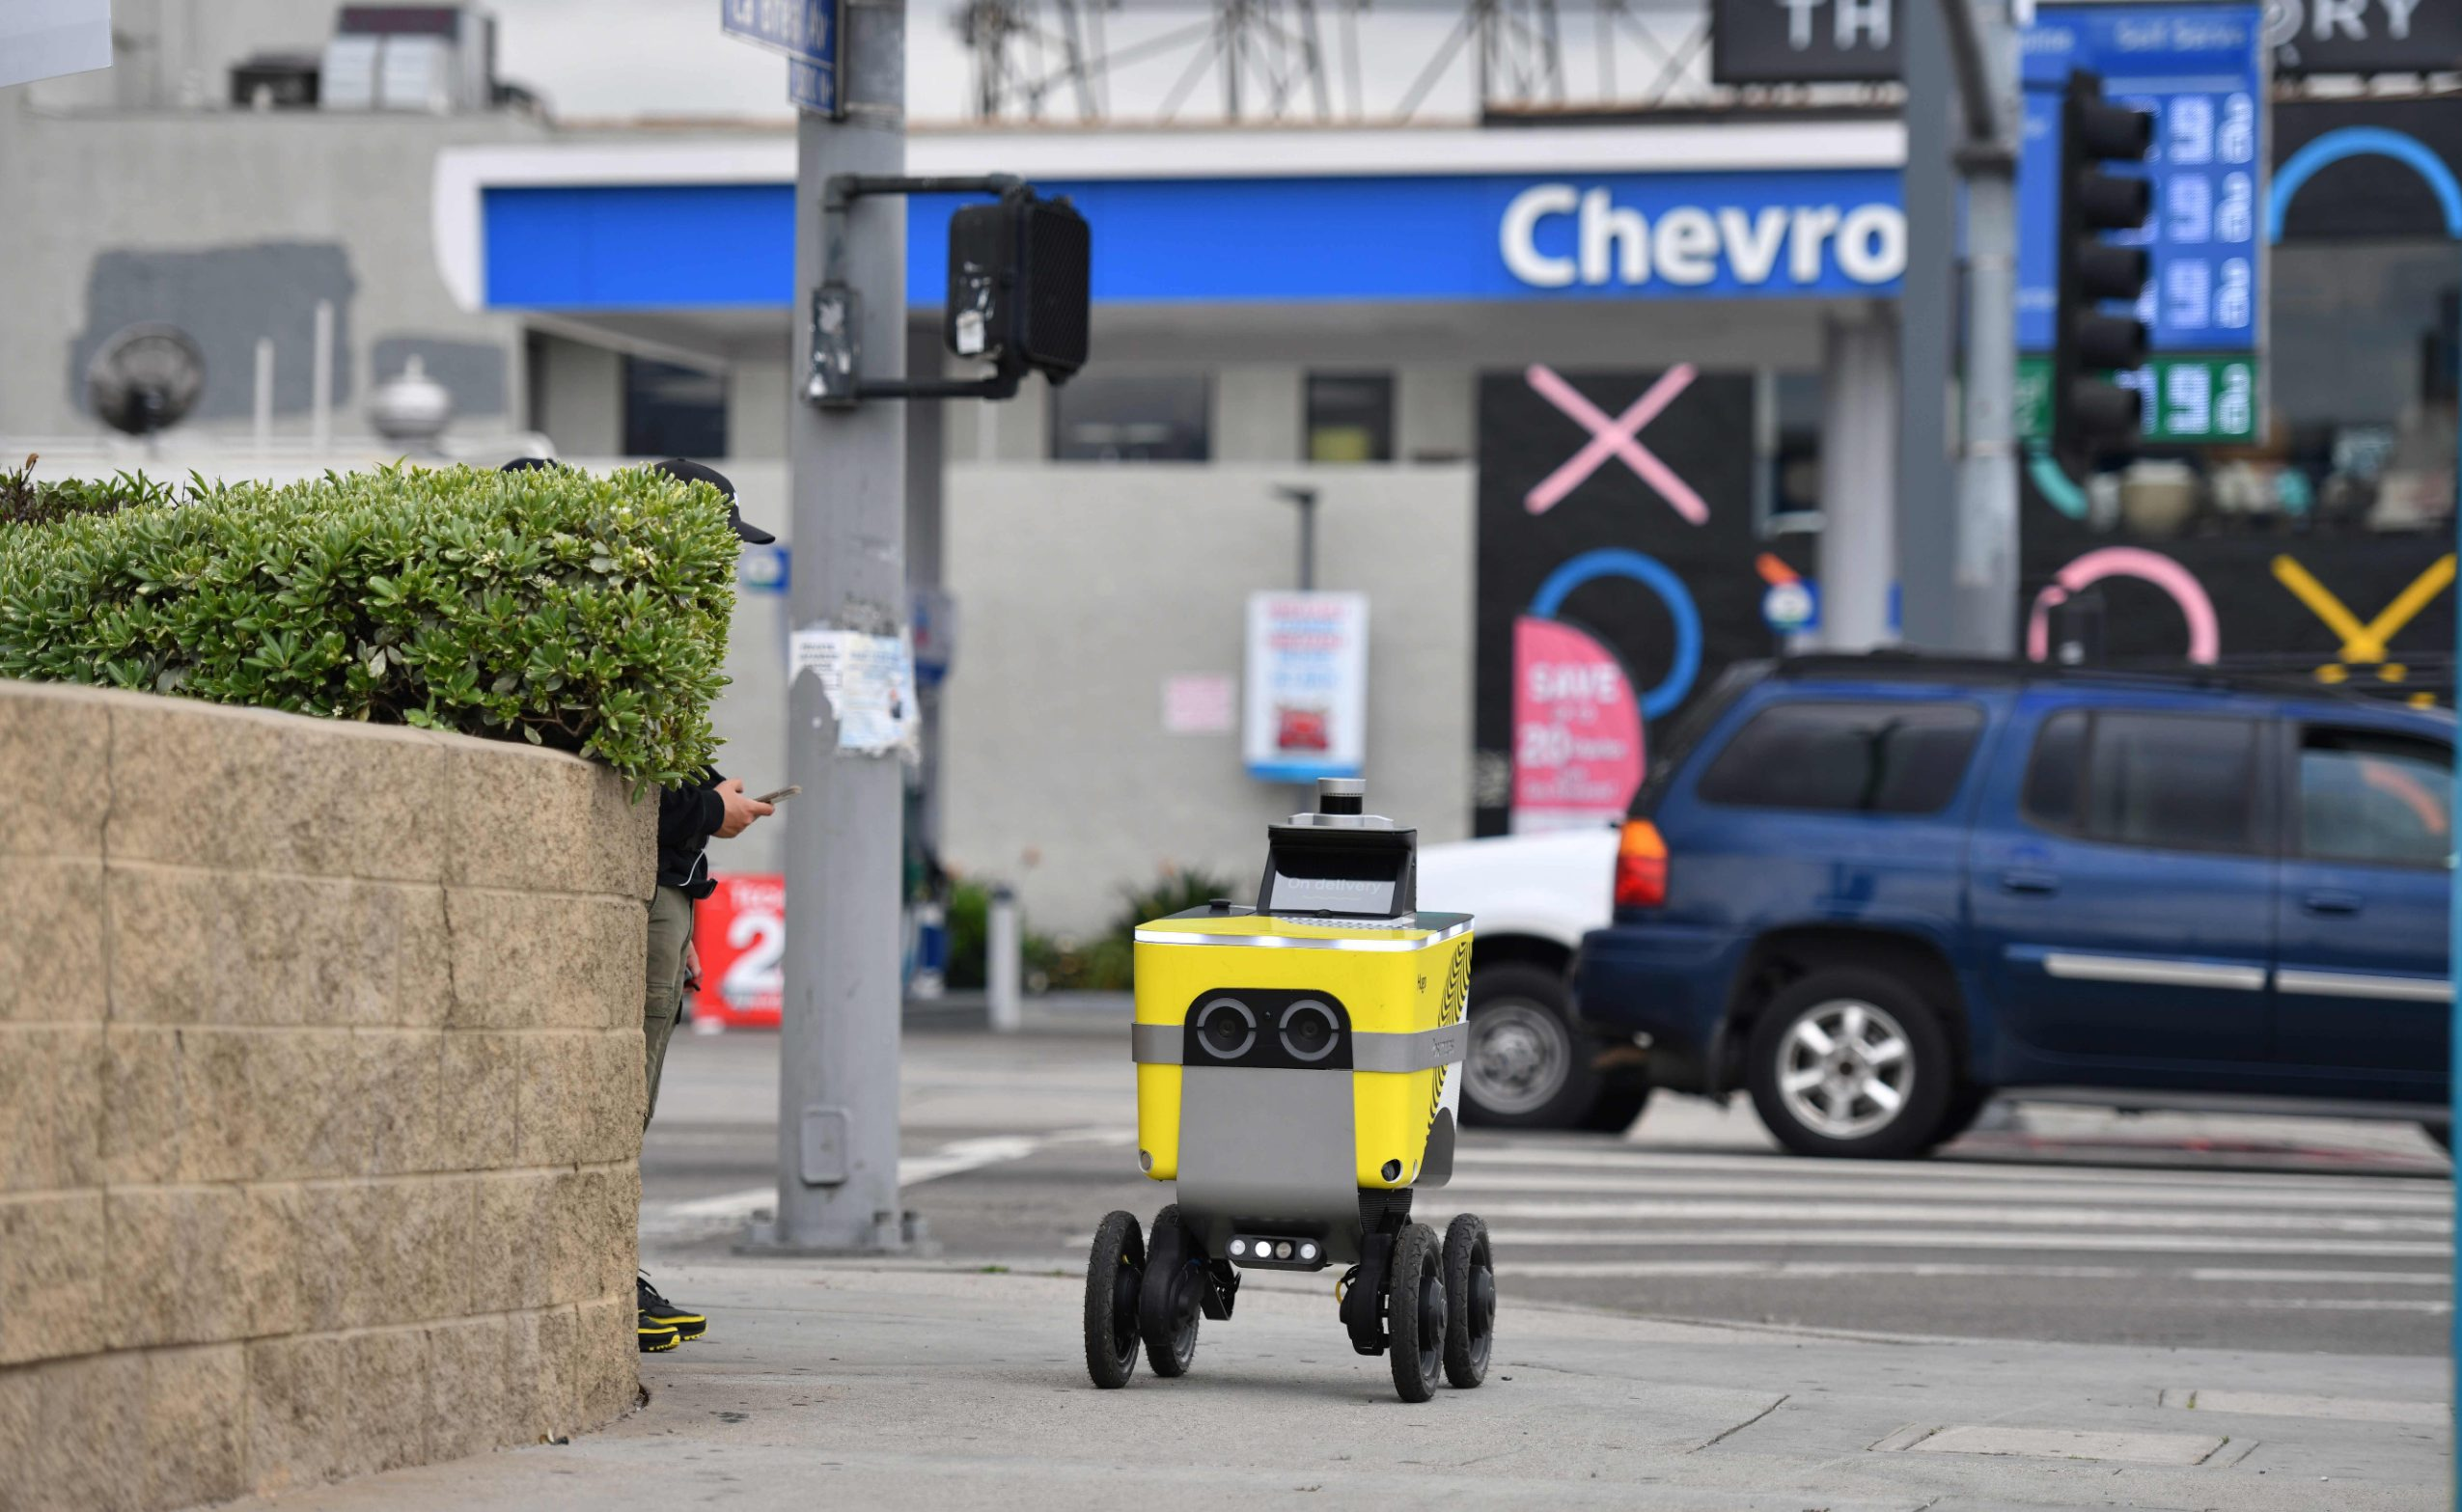 A Postmate delivery robot is seen on its route to deliver food to customers in Los Angeles on March 24, 2020. - In California, already under orders to stay home, Governor Gavin Newsom tightened the lockdown to shut parking lots at beaches and parks after tens of thousands flouted social distancing rules. (Photo by Chris DELMAS / AFP)